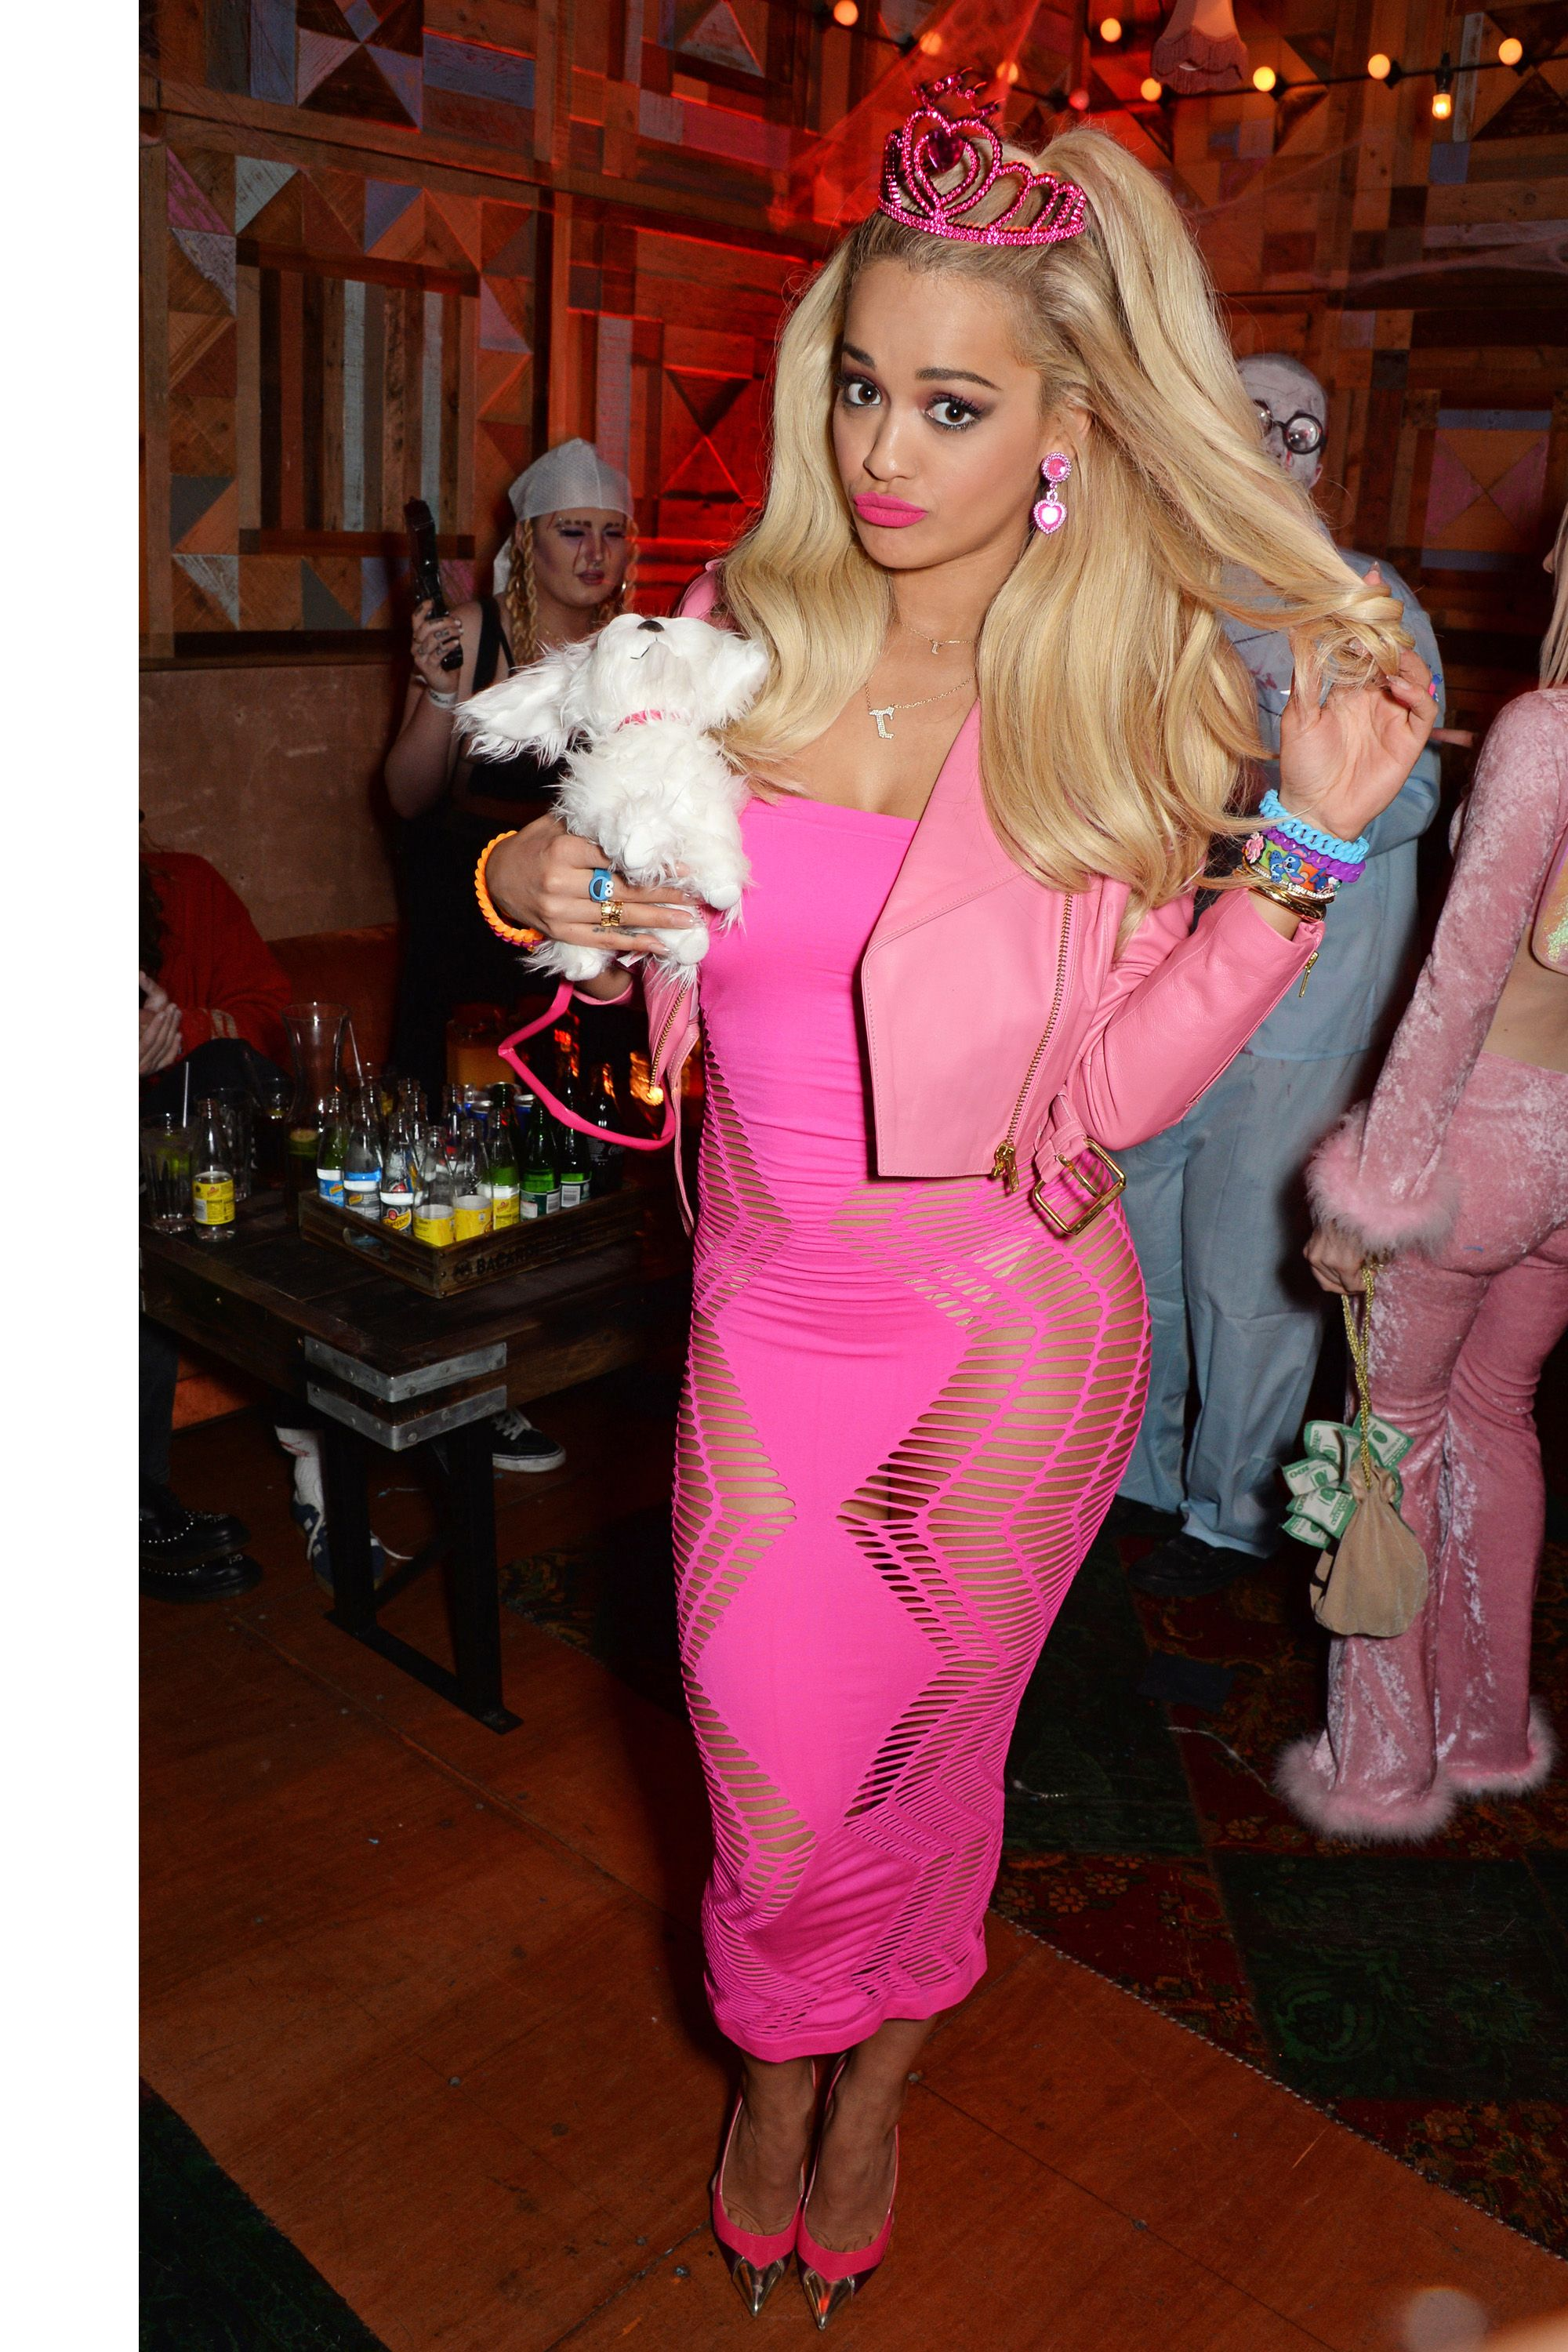 Celebrity Costumes - Halloween Costumes for Adults and Kids